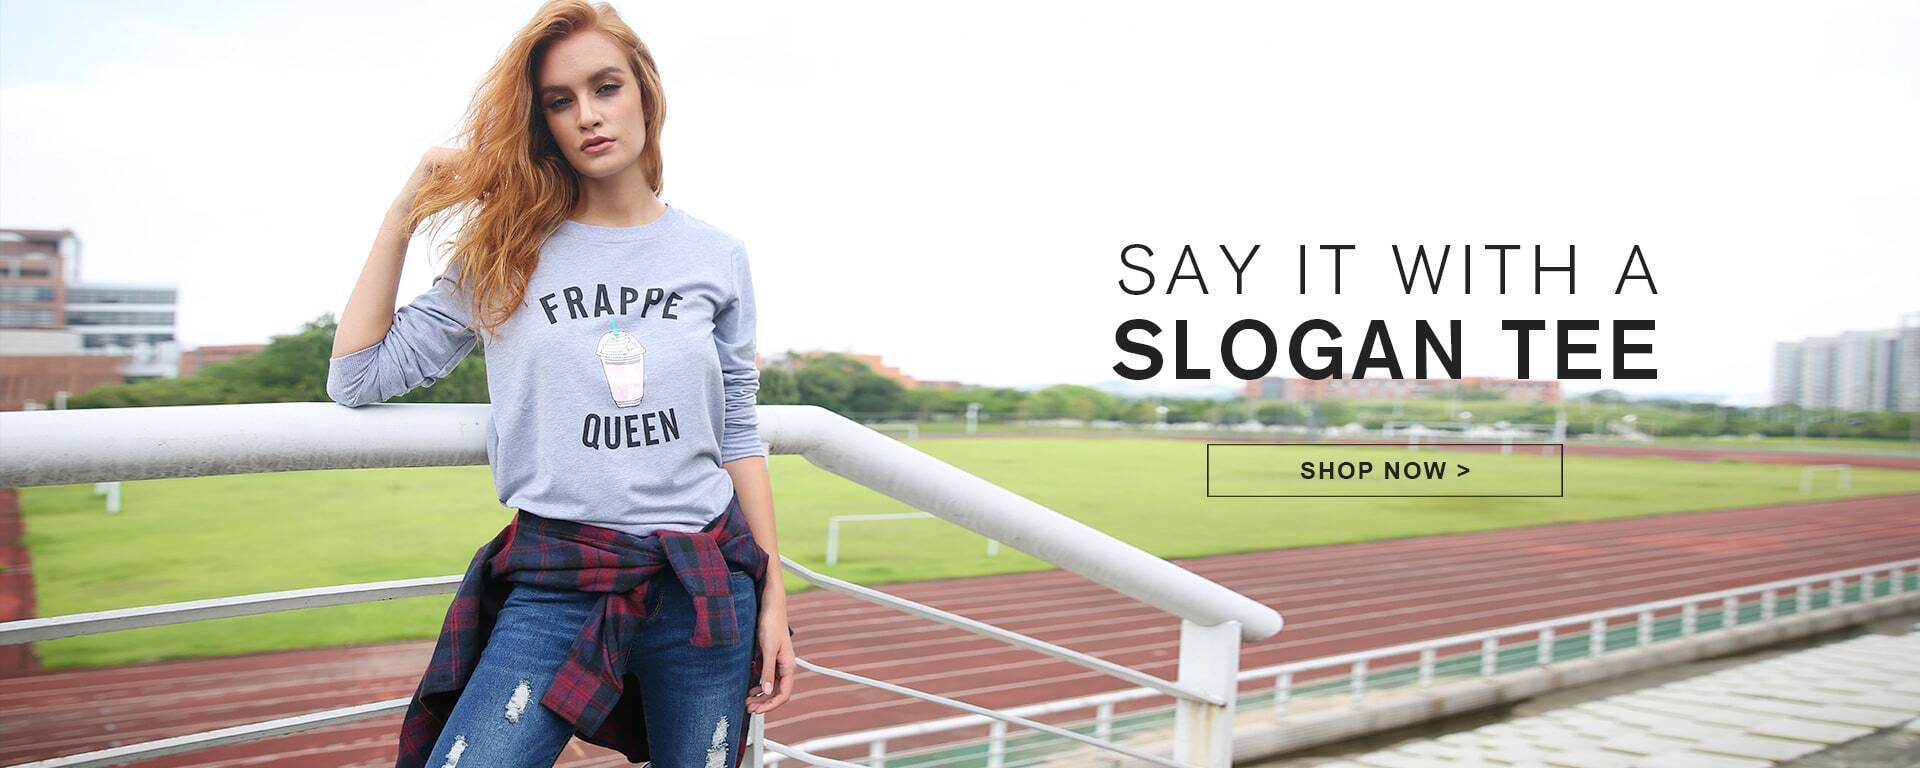 SAY IT WITH A SLOGAN TEE